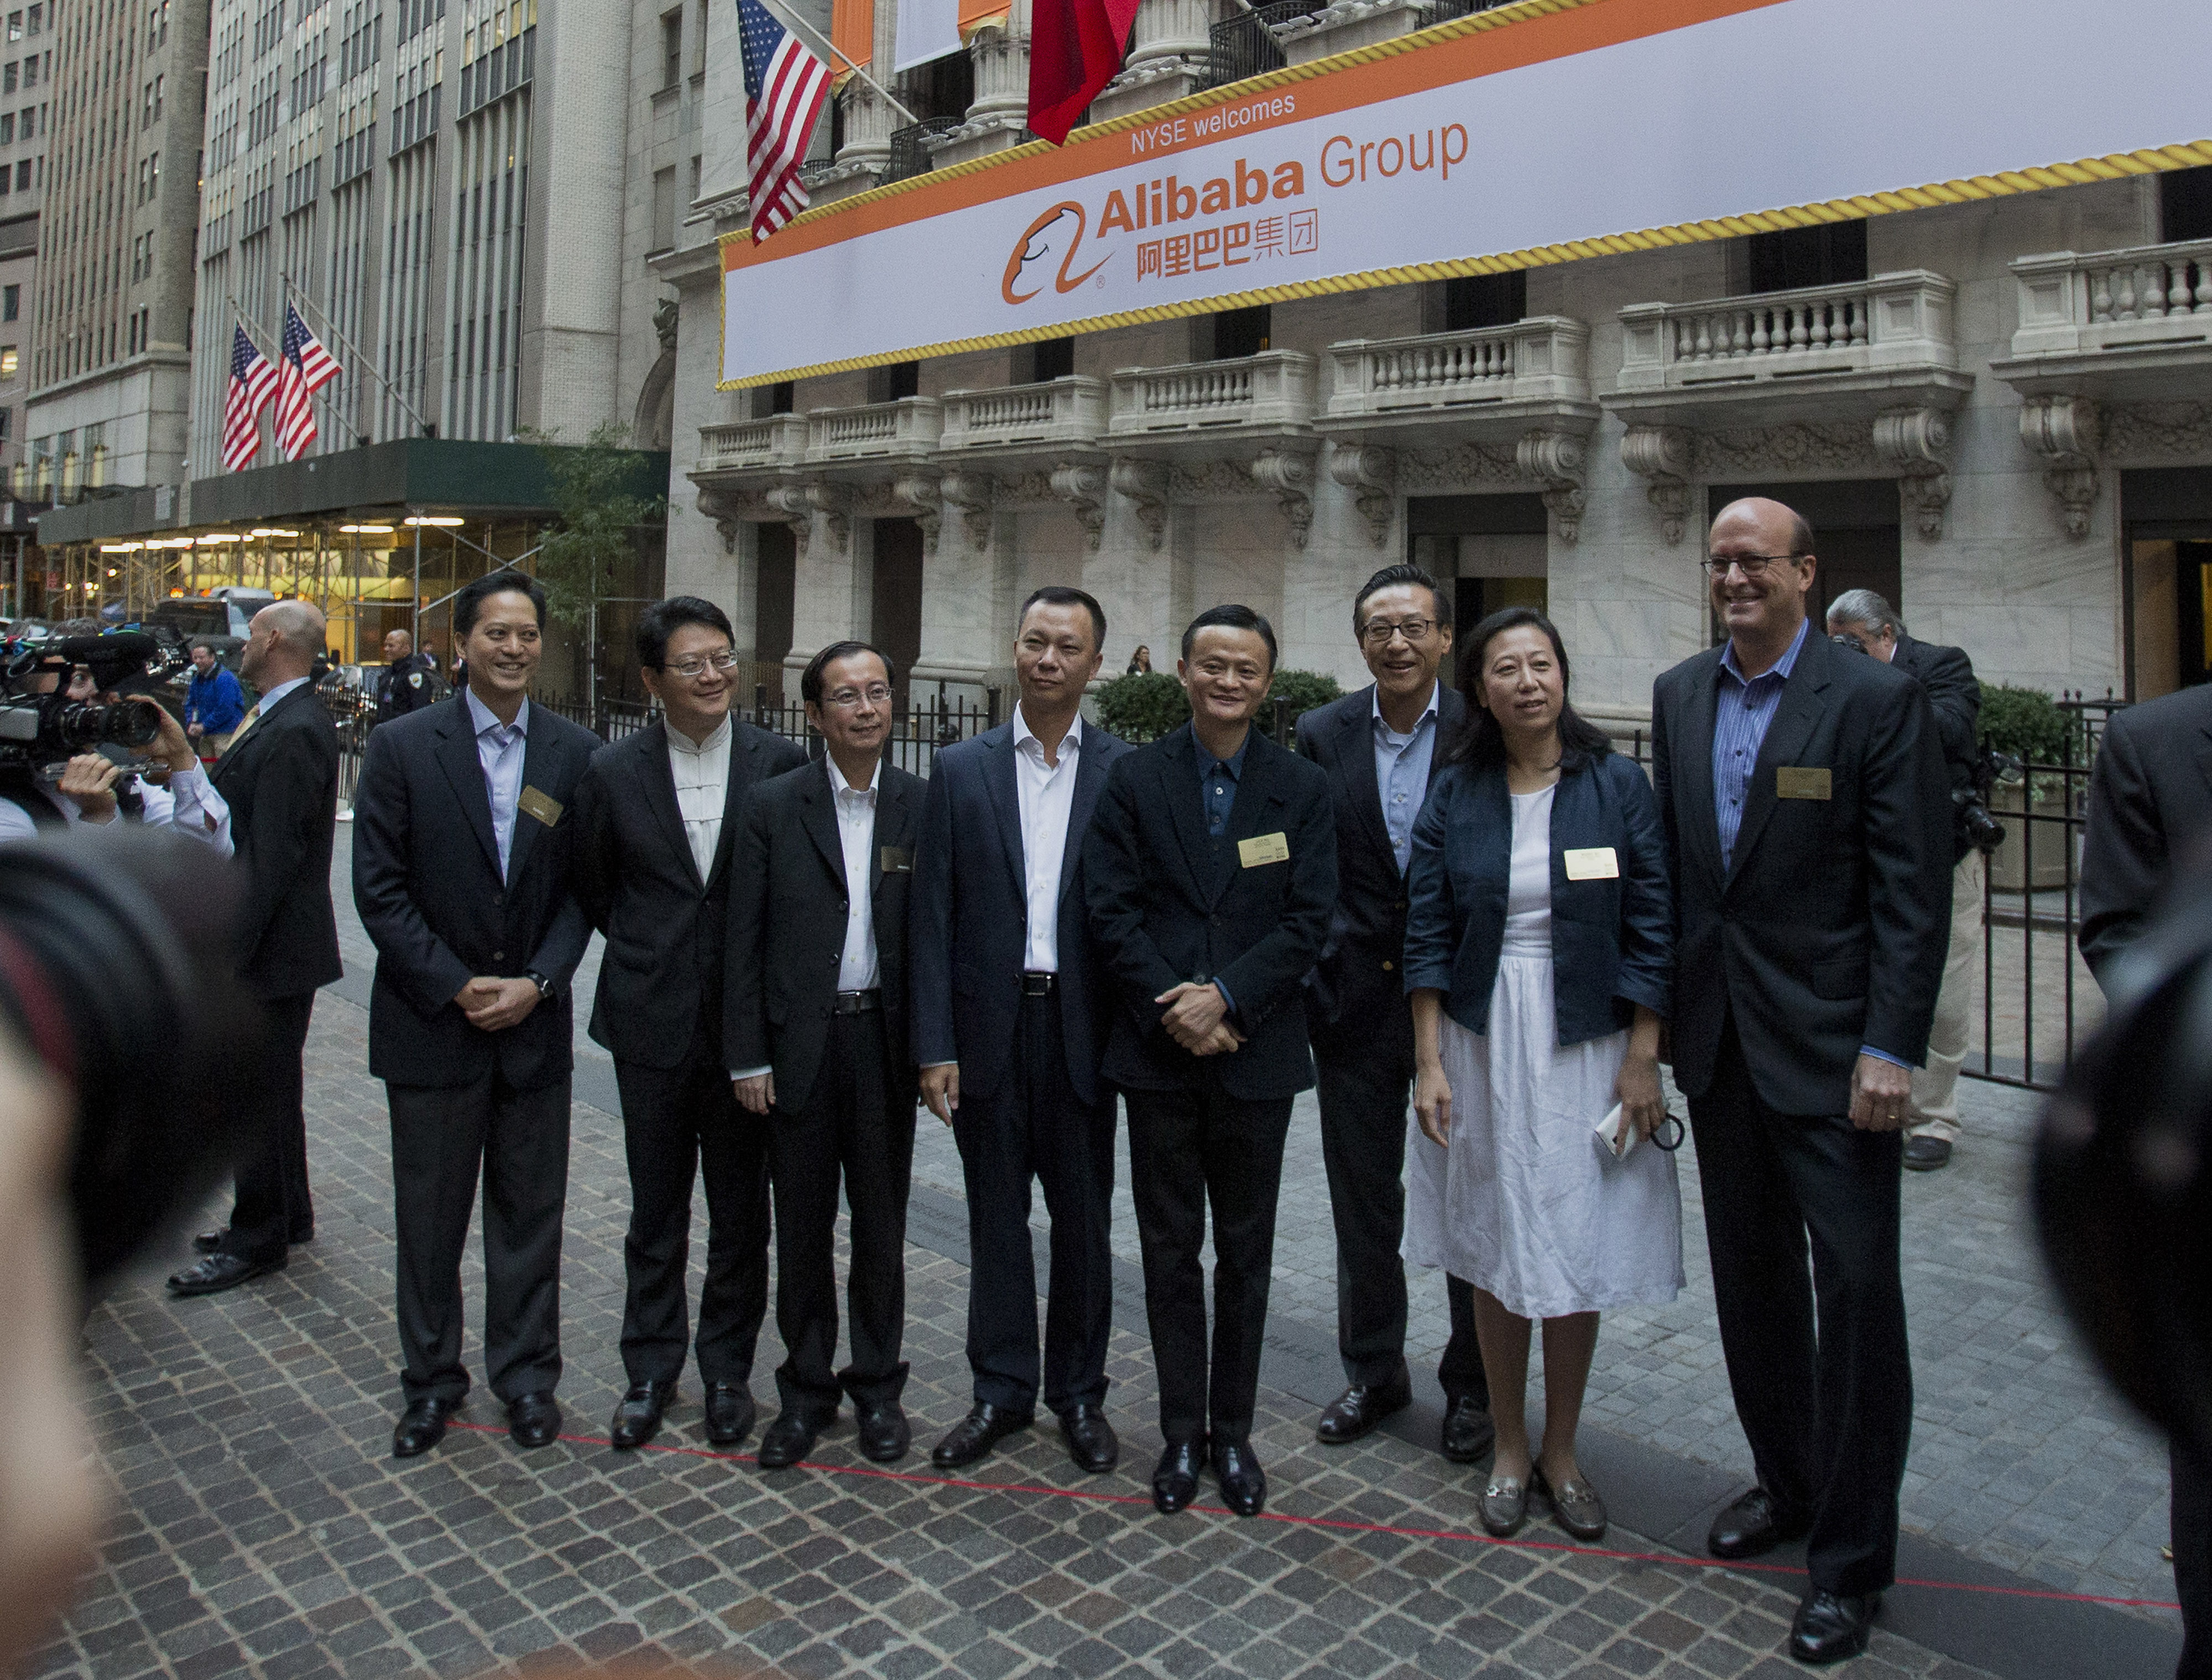 A file picture shows CFO Maggie Wu (2nd from right) with other top Alibaba executives in front of the New York Stock Exchange on Sept 19, 2014 after the firm's listing. Wu has now been given added responsibilities within the group. Photo: Bloomberg